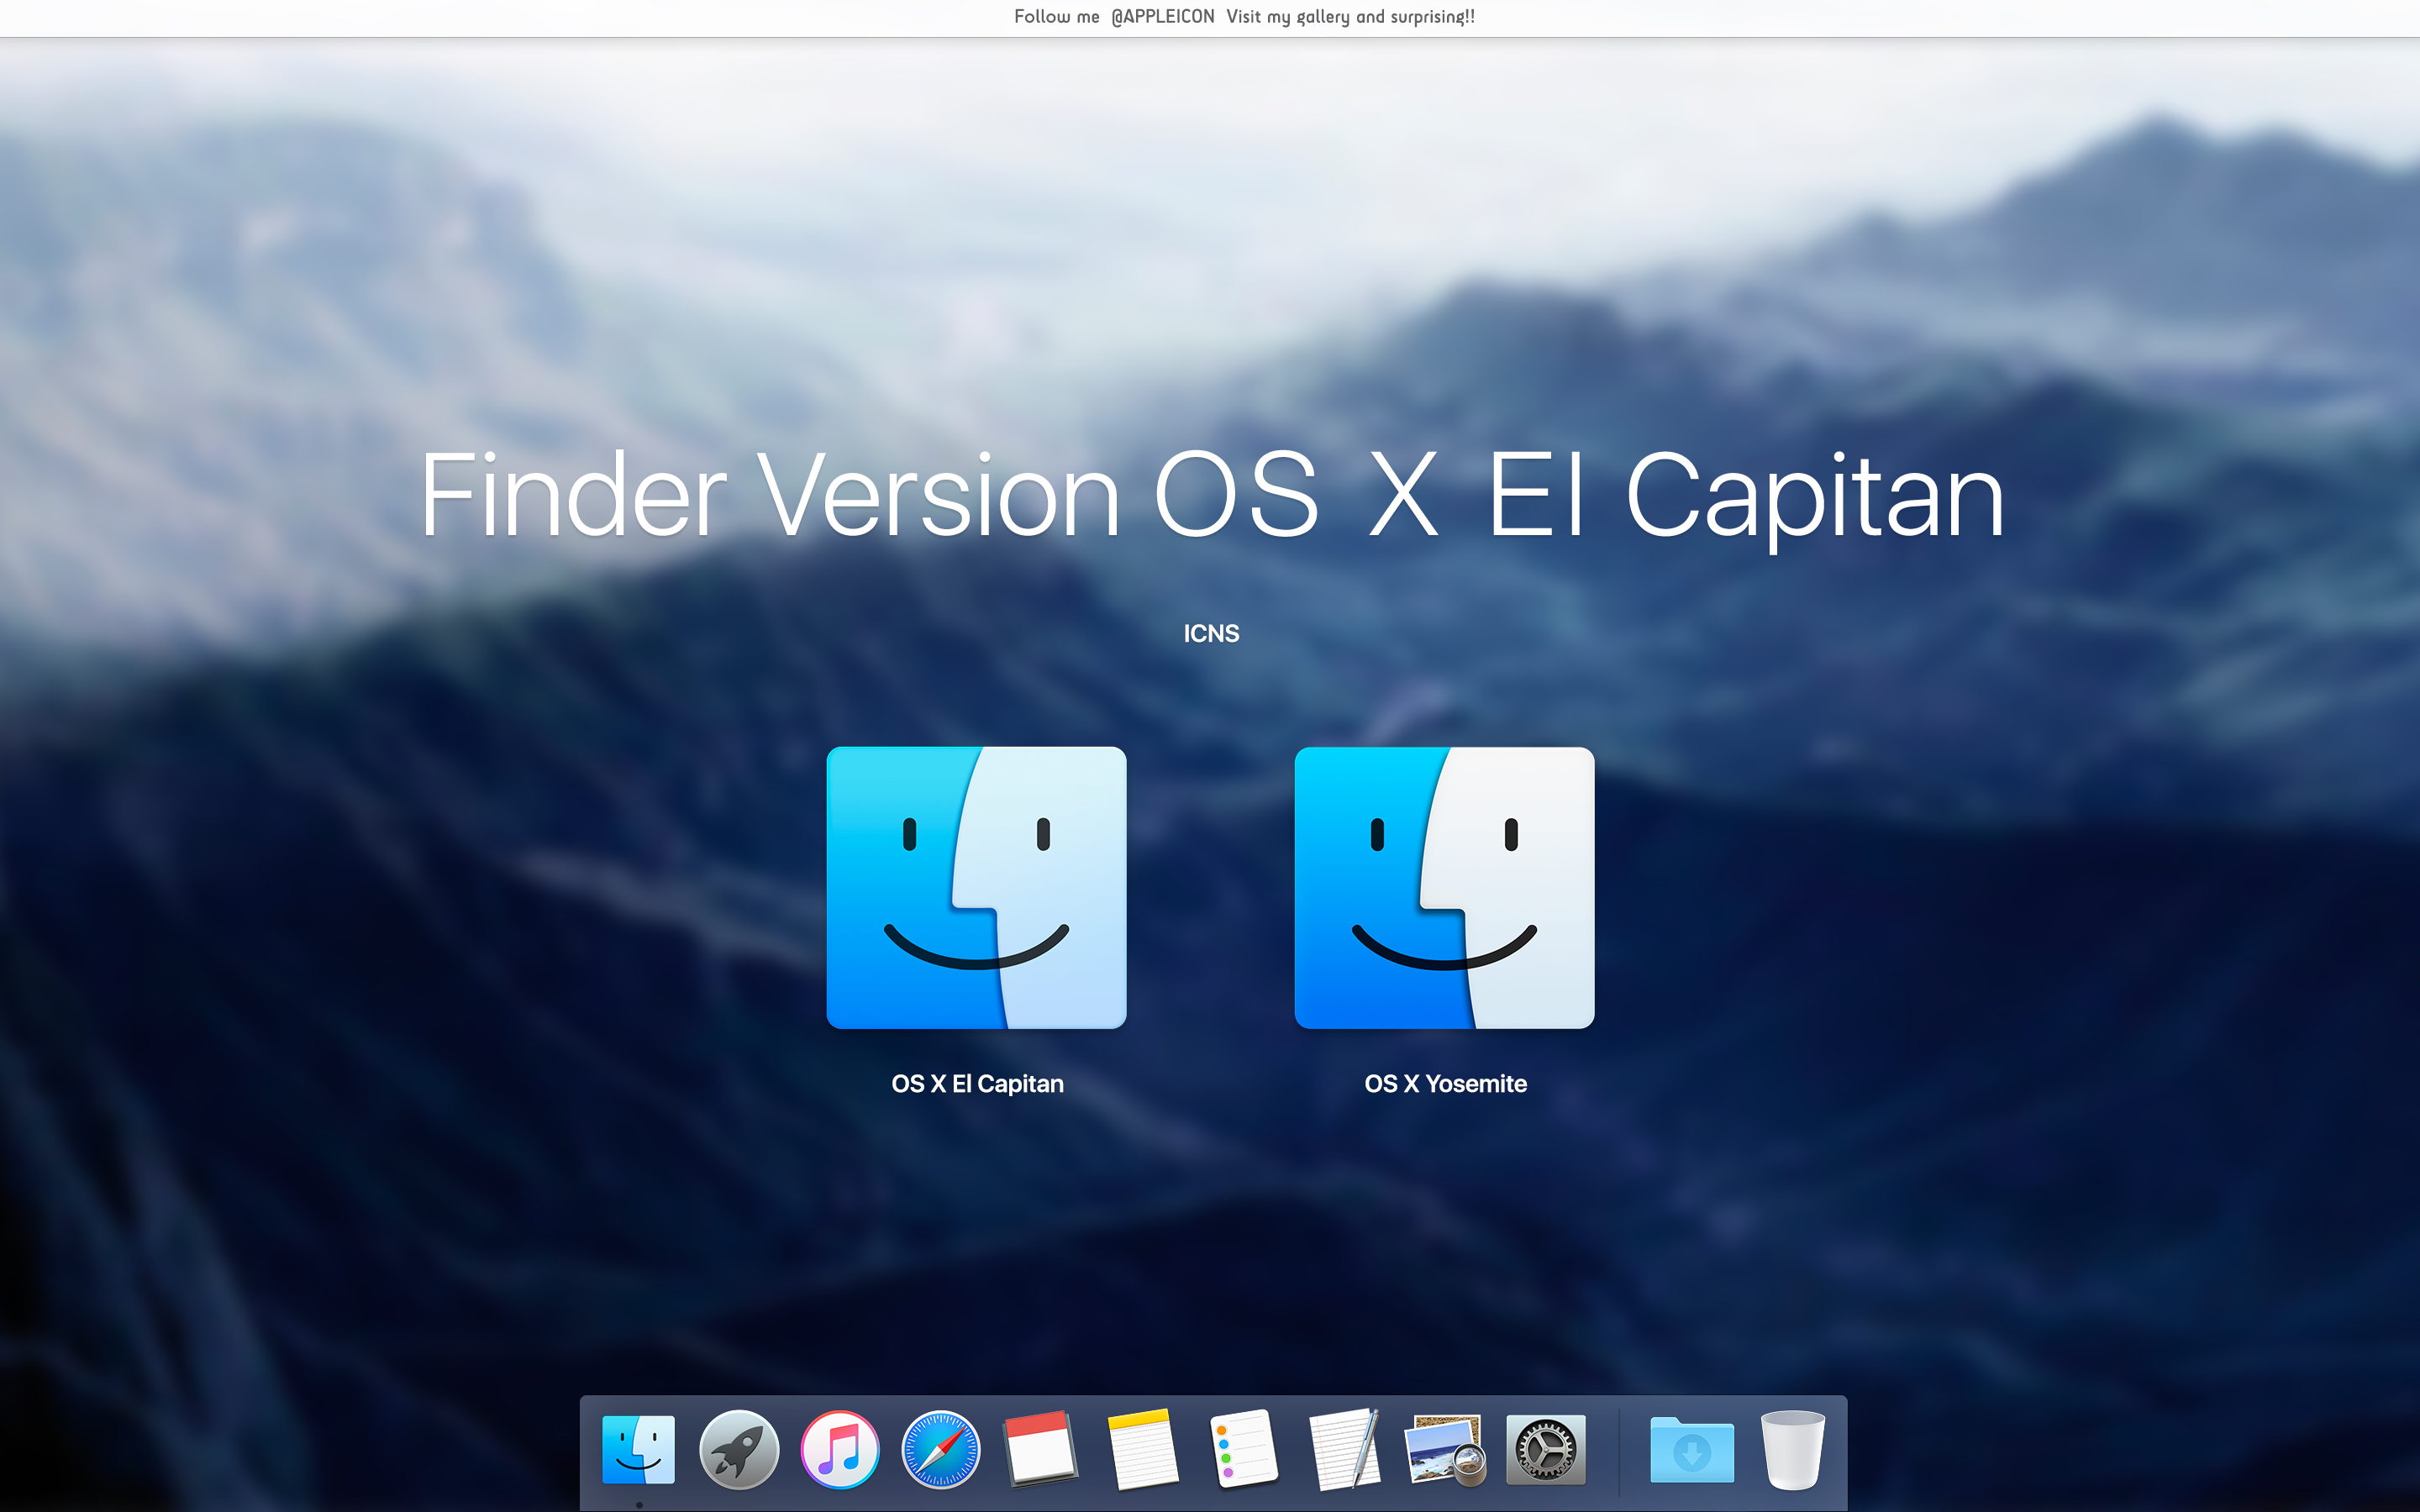 Finder Version OS X EL Capitan by MaxColins on DeviantArt